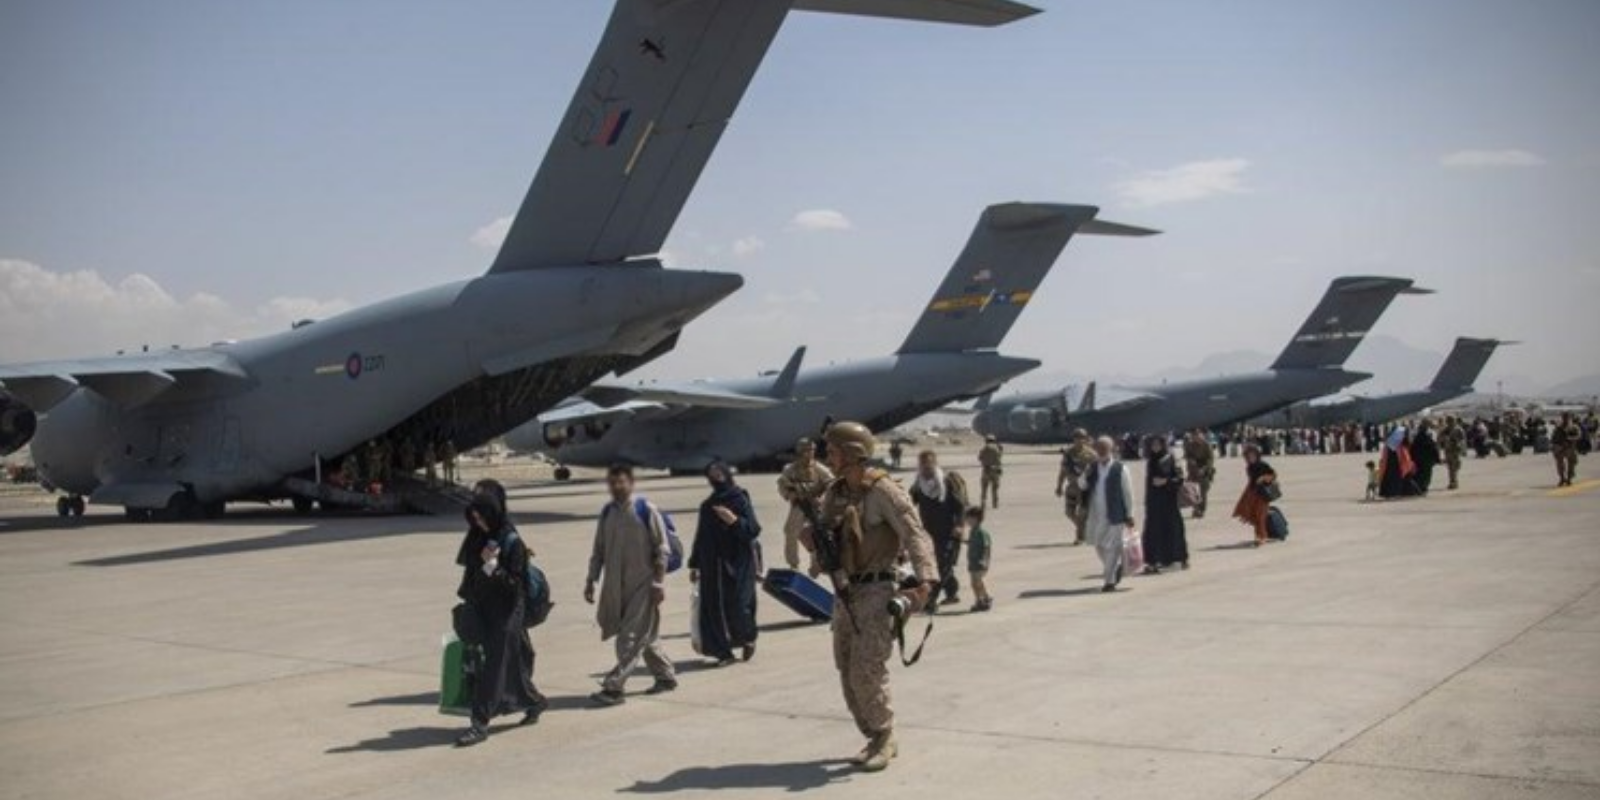 'KILL LIST': US officials gave the Taliban names of American citizens, green card holders and Afghan allies